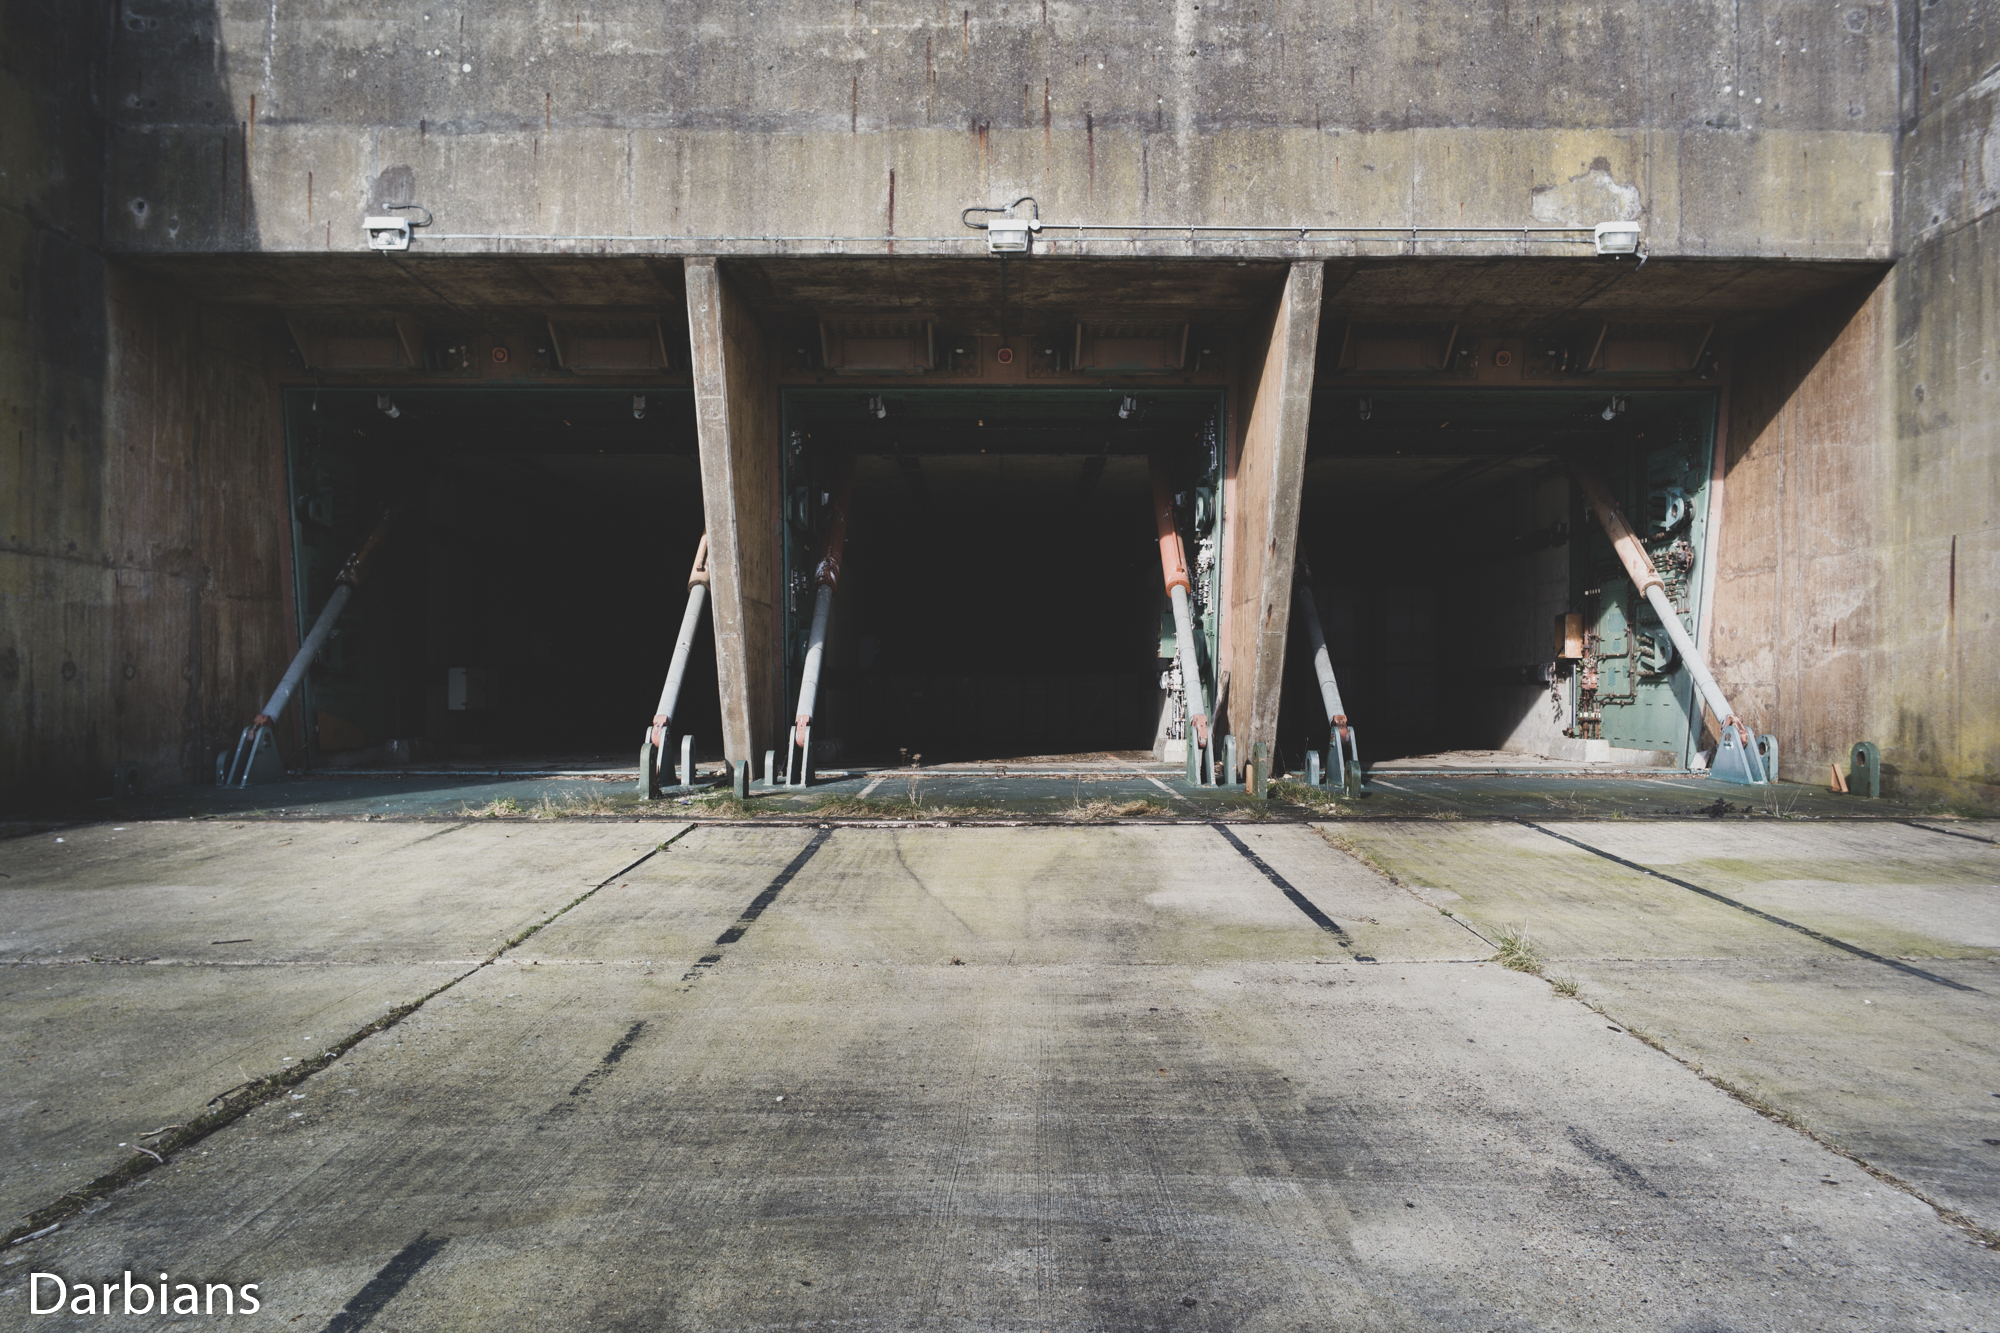 RAF Greenham Common: Head on view of one of the silos. Sadly these were being used for storage.